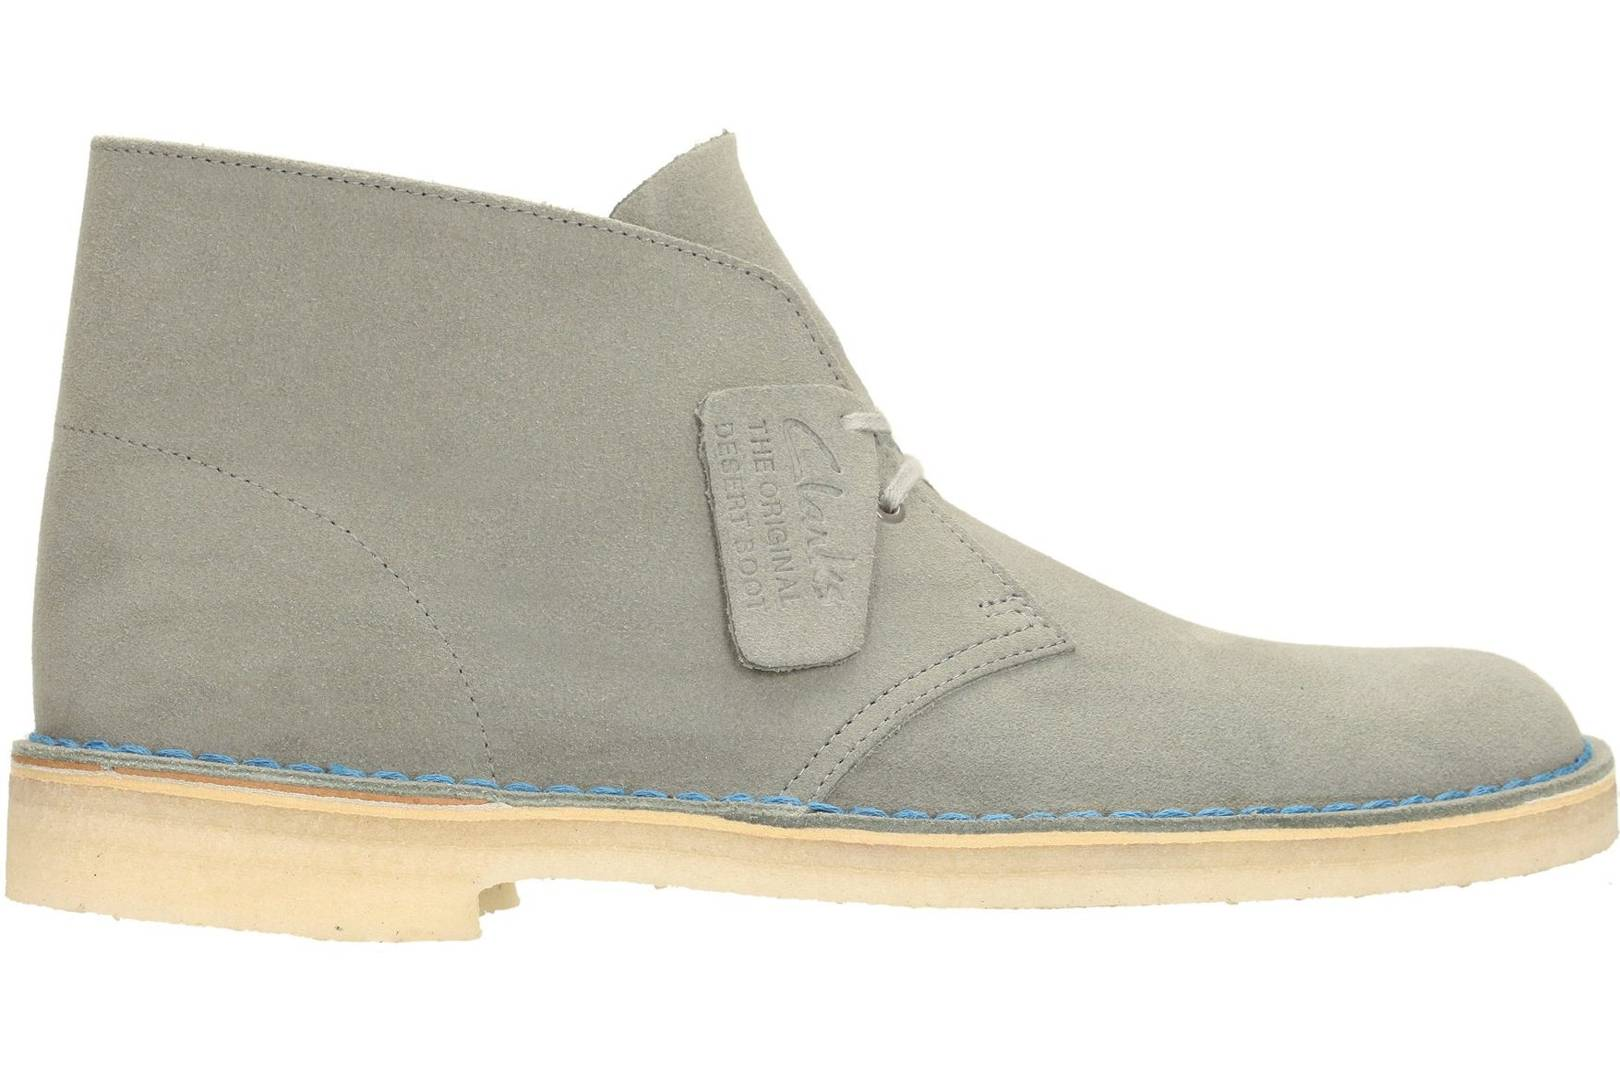 ab262ca41 7 of the best desert boots for summer